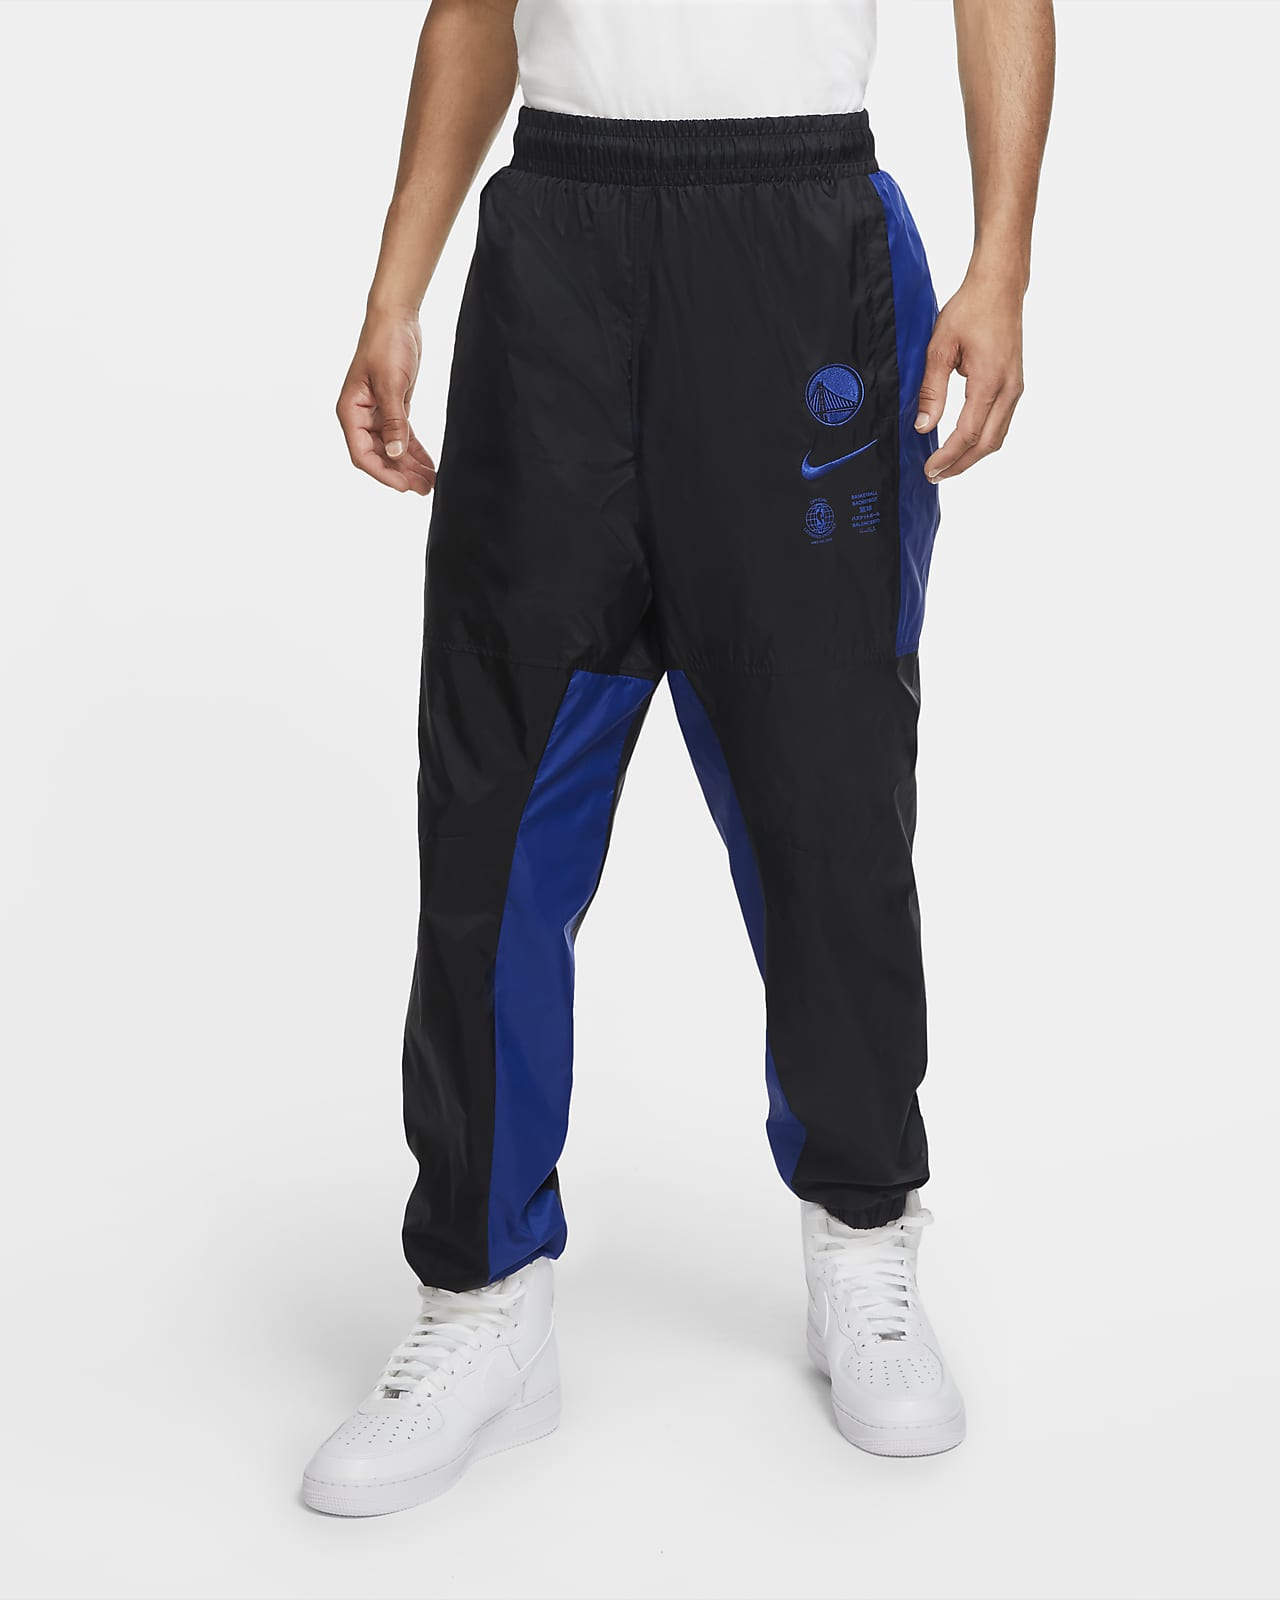 Golden State Warriors Courtside Men's Nike NBA Tracksuit Pants